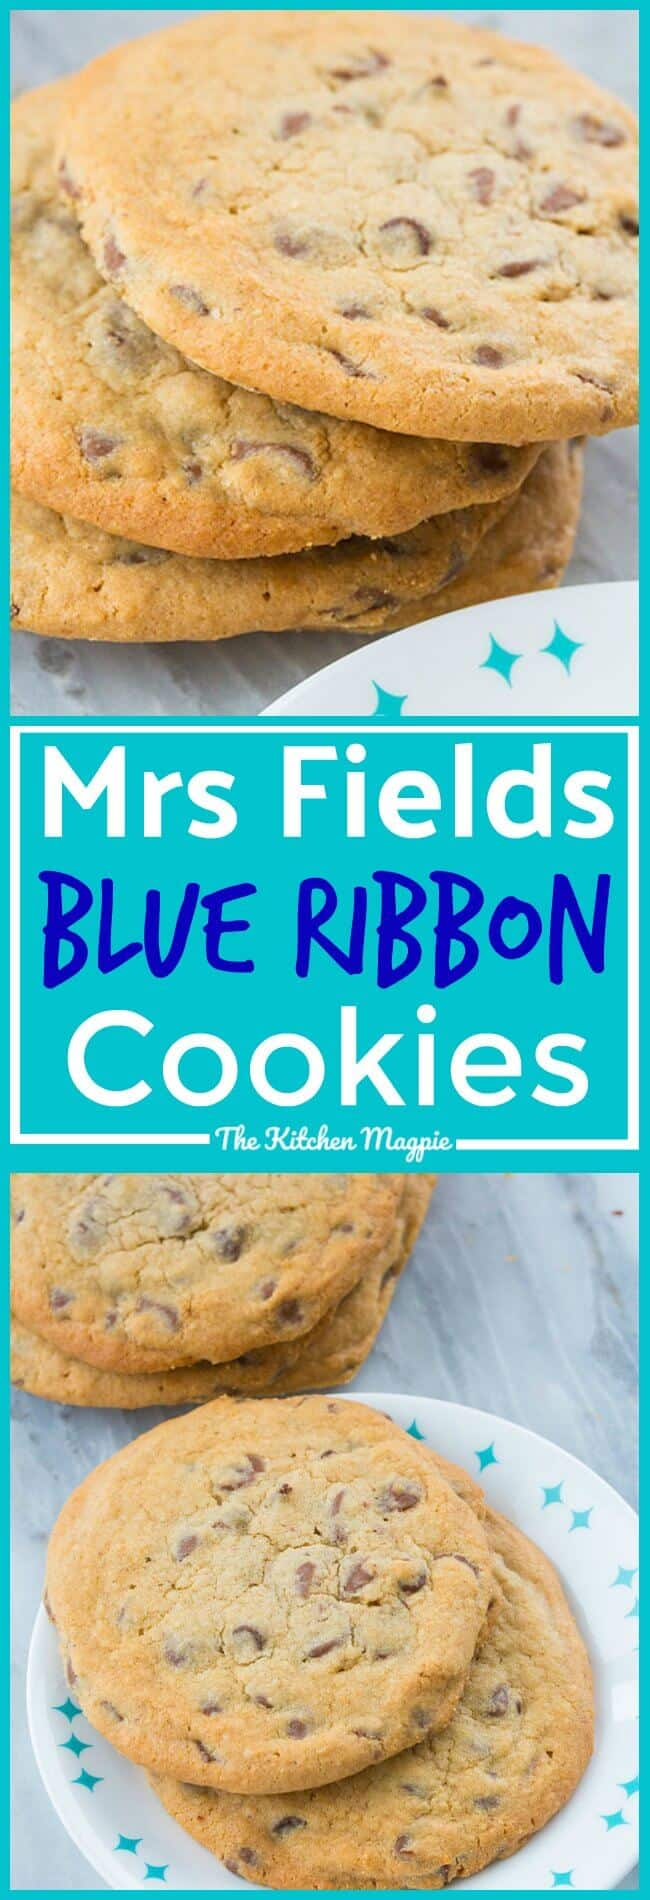 The secret to these Mrs Fields Blue Ribbon Chocolate Chip Cookies is the dark brown sugar! This recipe is the original Blue Ribbon cookies! #cookies #chocolate #desserts #chocolatechipcookies